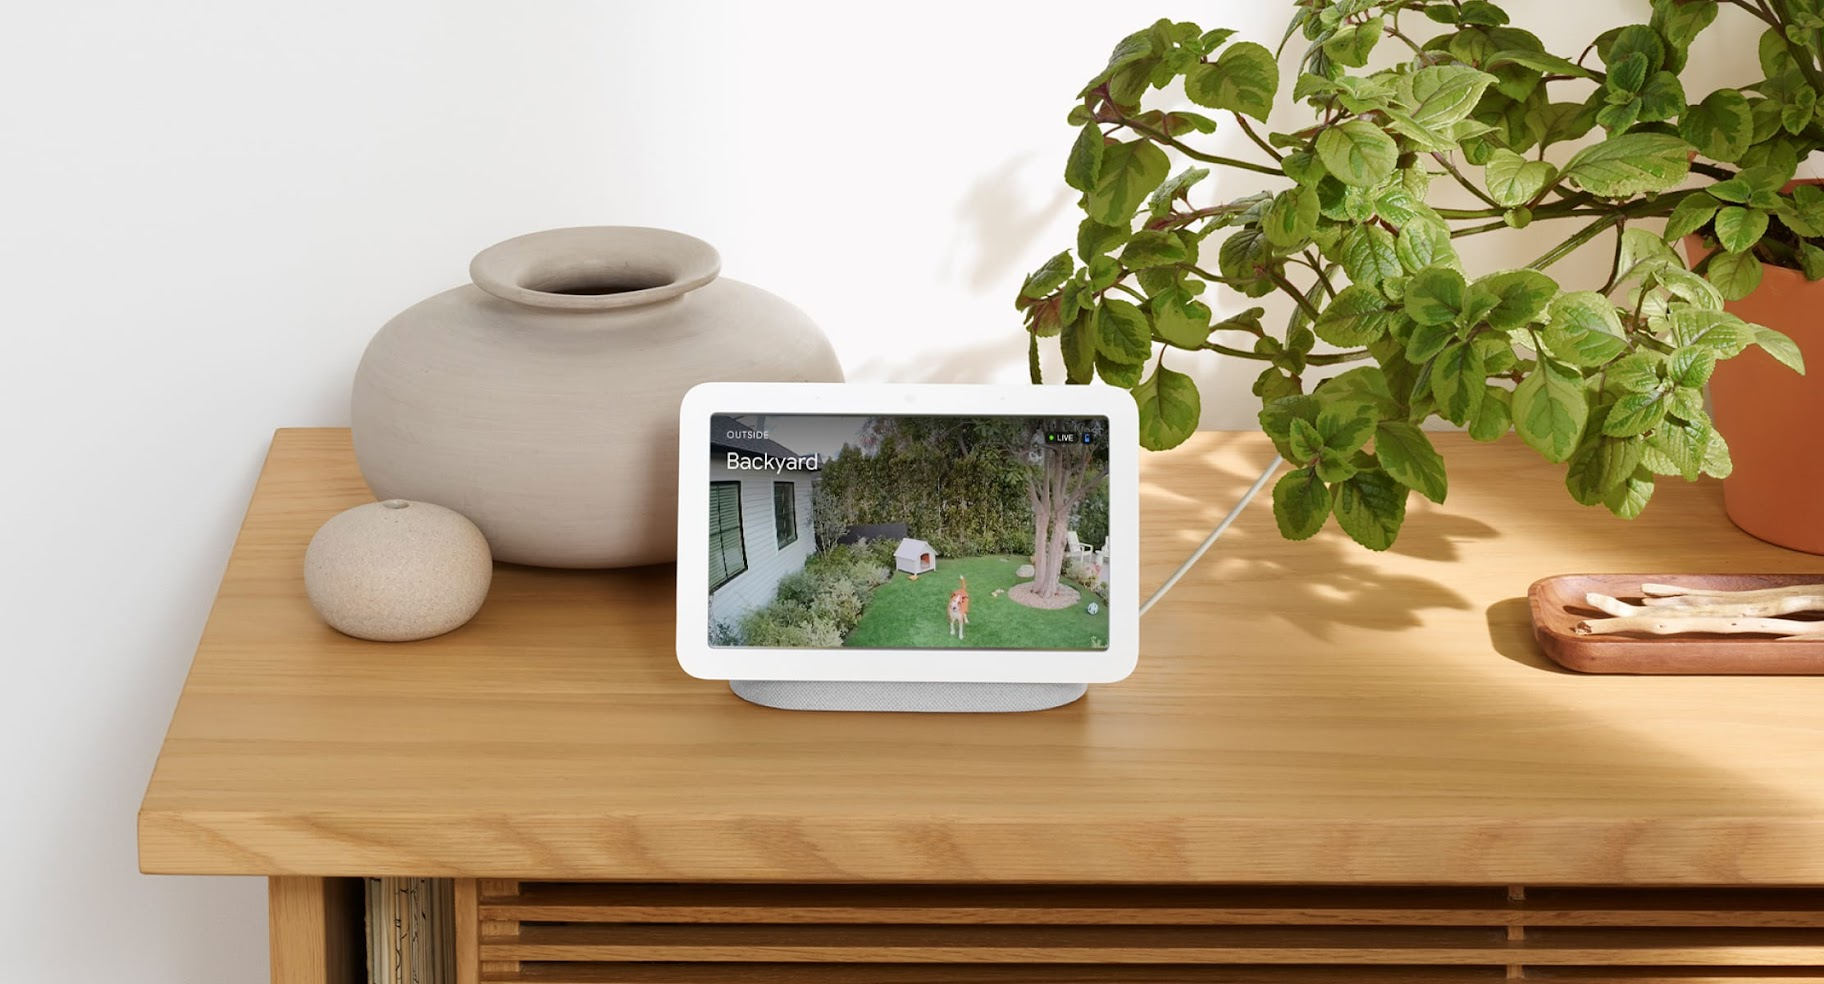 A Nest Hub on a table with plants and pottery.